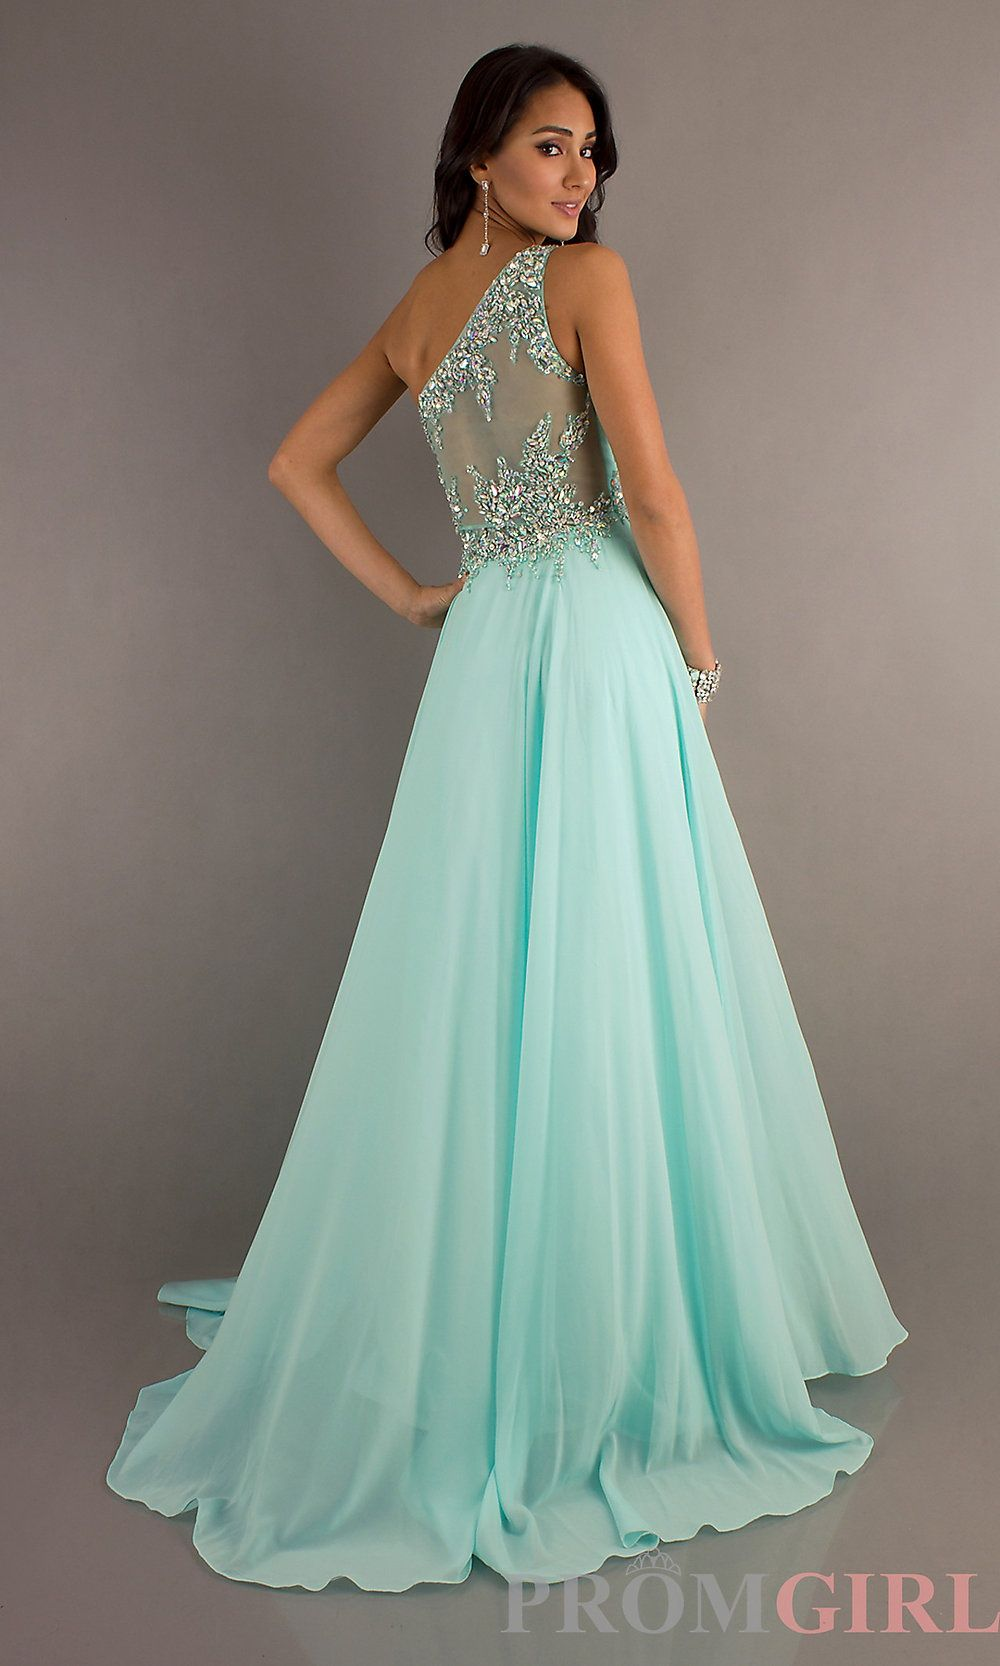 5fa6d12c26855 Want this as my grade 12 formal dress | Cute dresses | Prom dresses ...